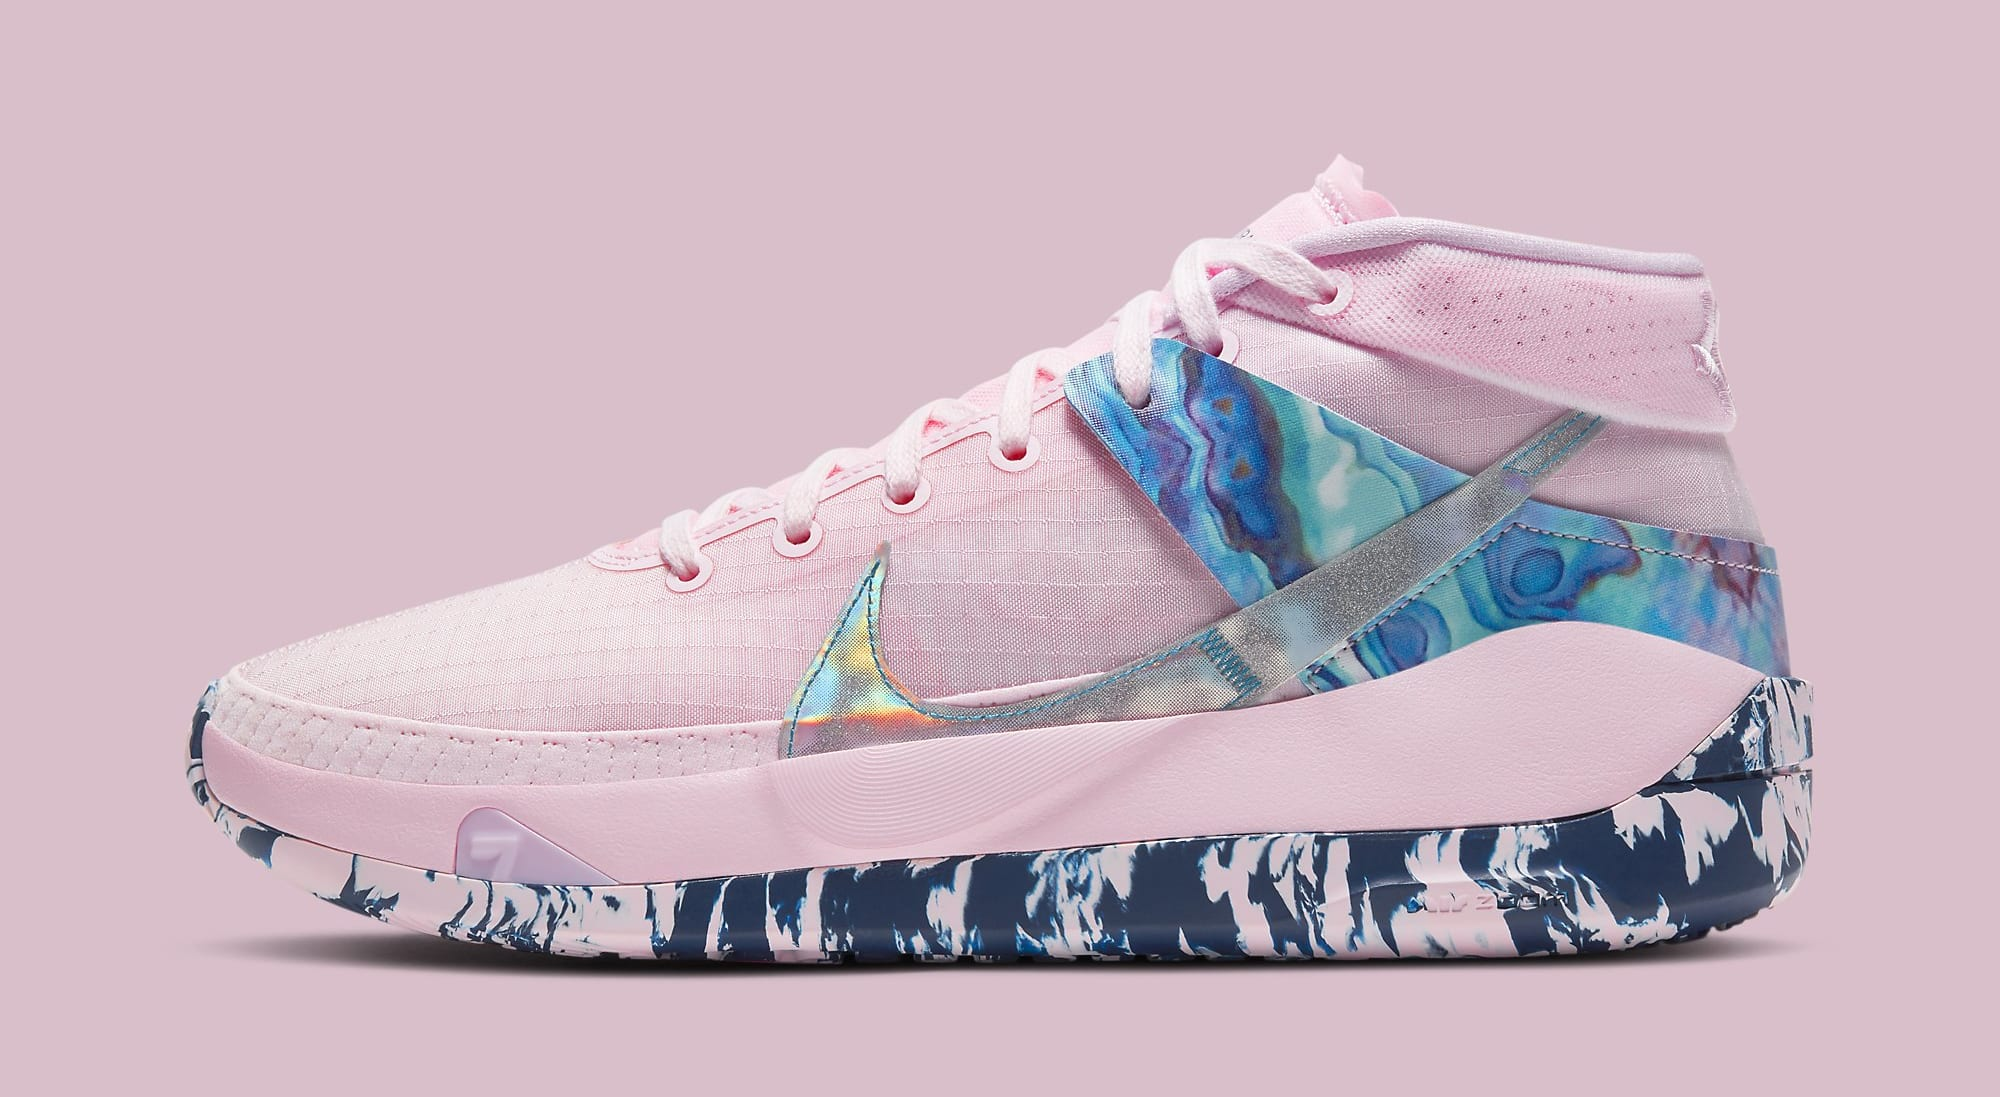 Nike KD 13 'Aunt Pearl' DC0011-600 Lateral